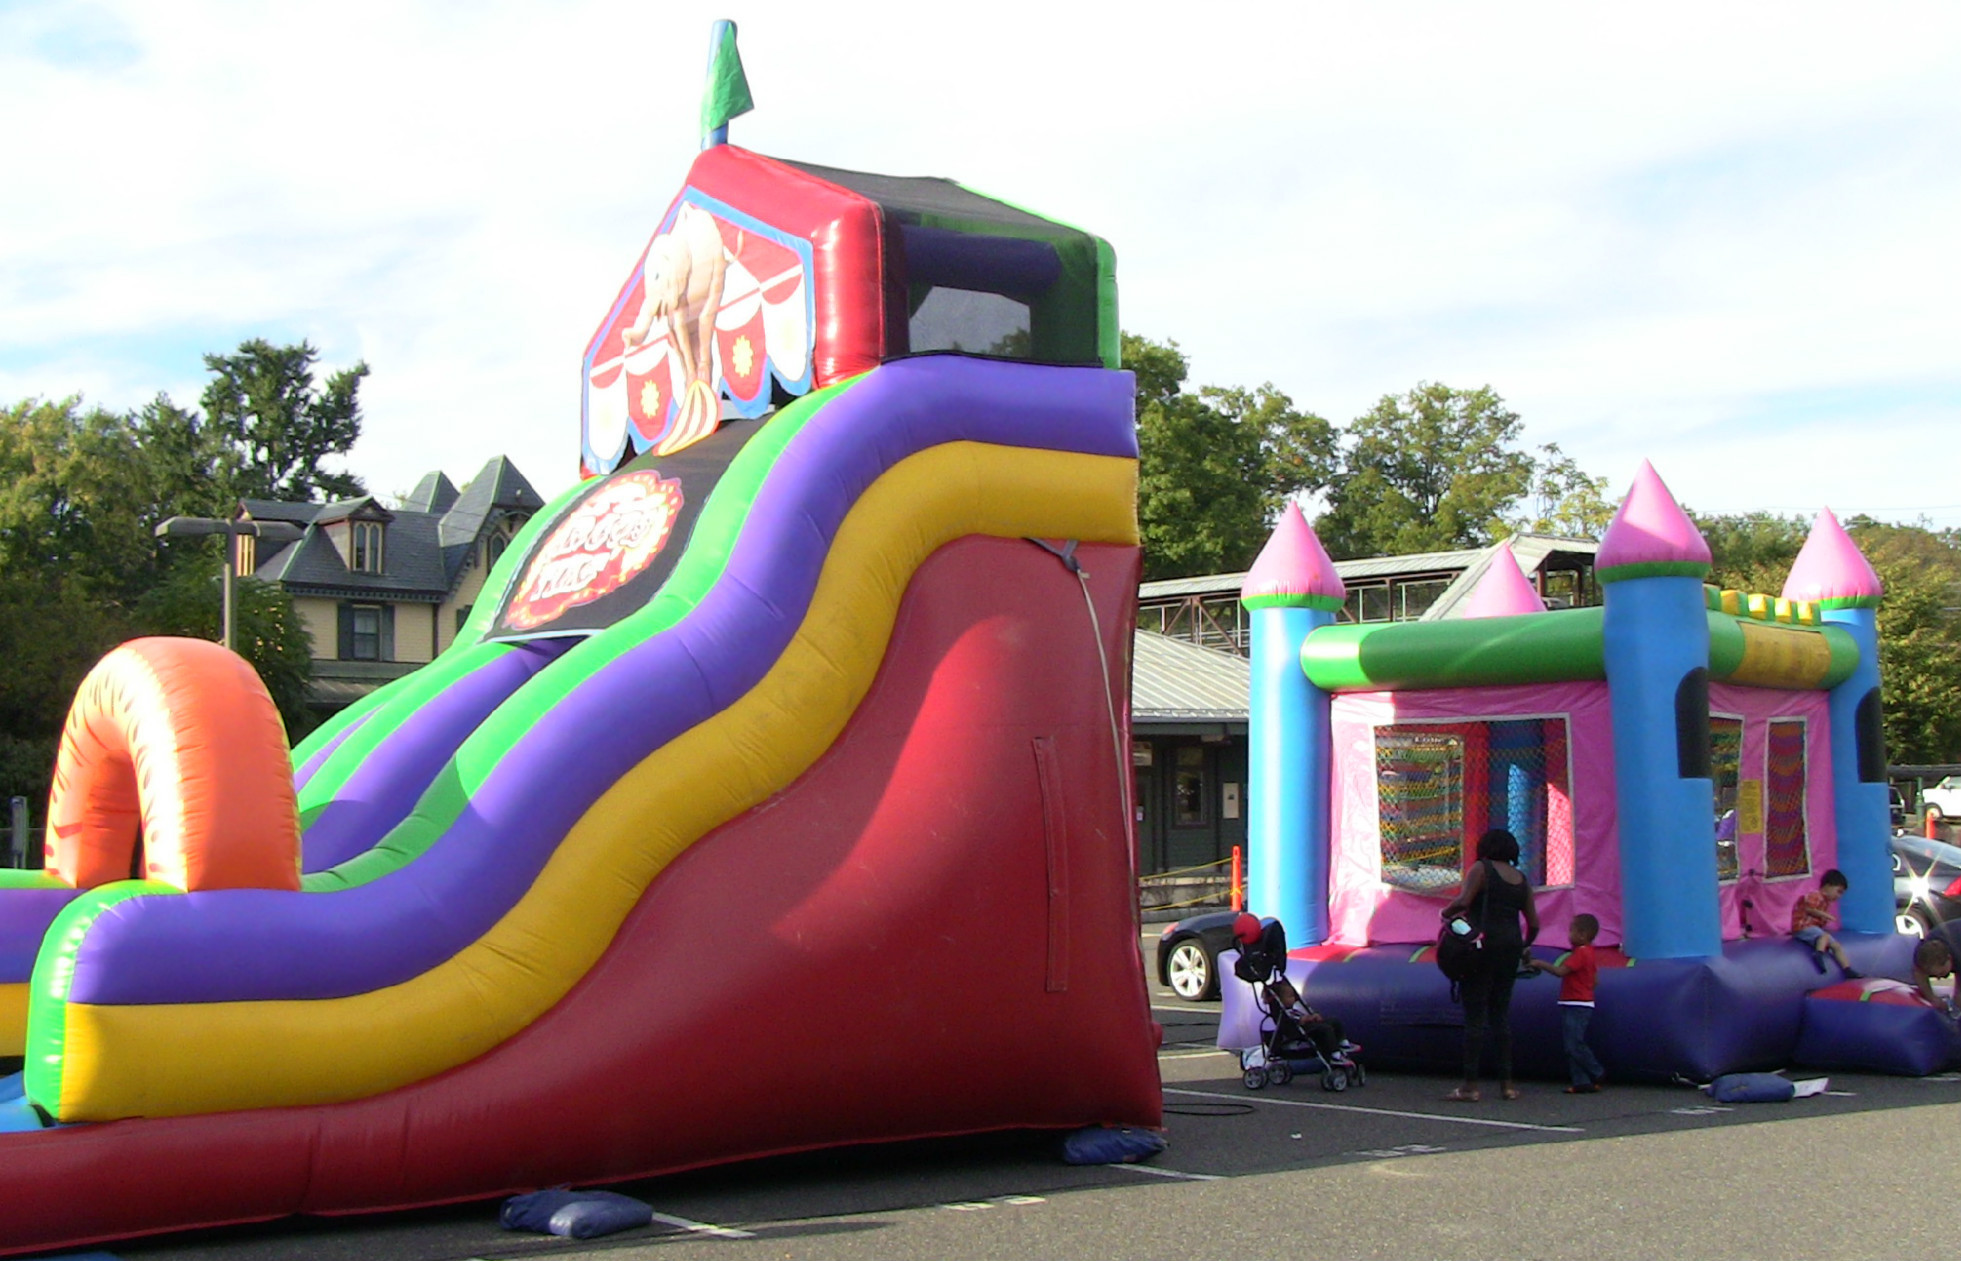 70dff88ea20e1f84d7ae_Bouncy_houses.jpg